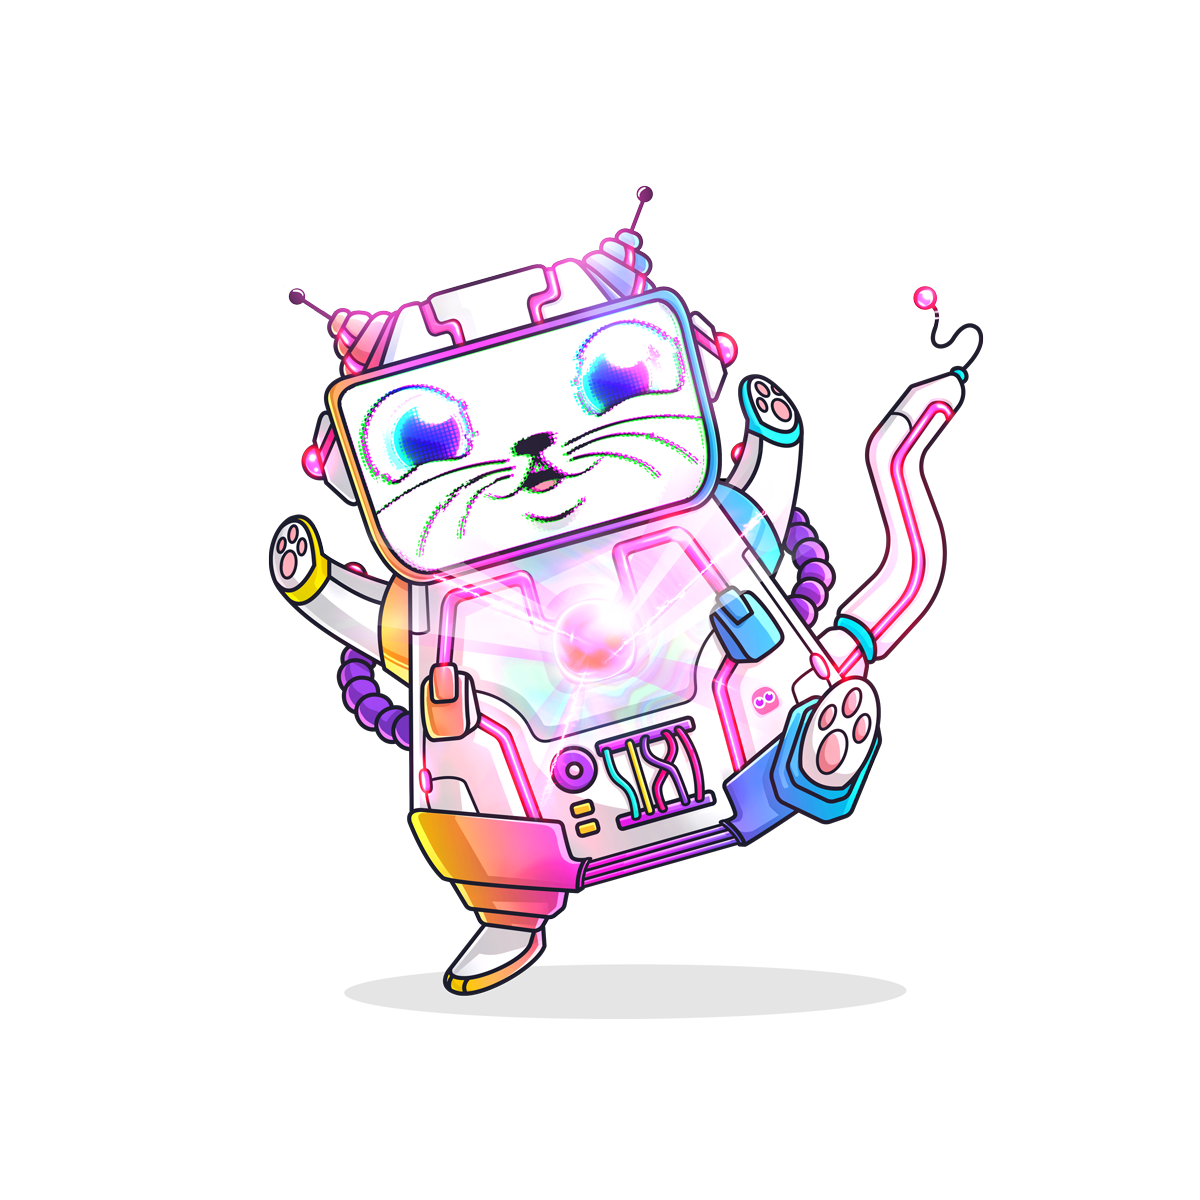 cryptokitty #1844